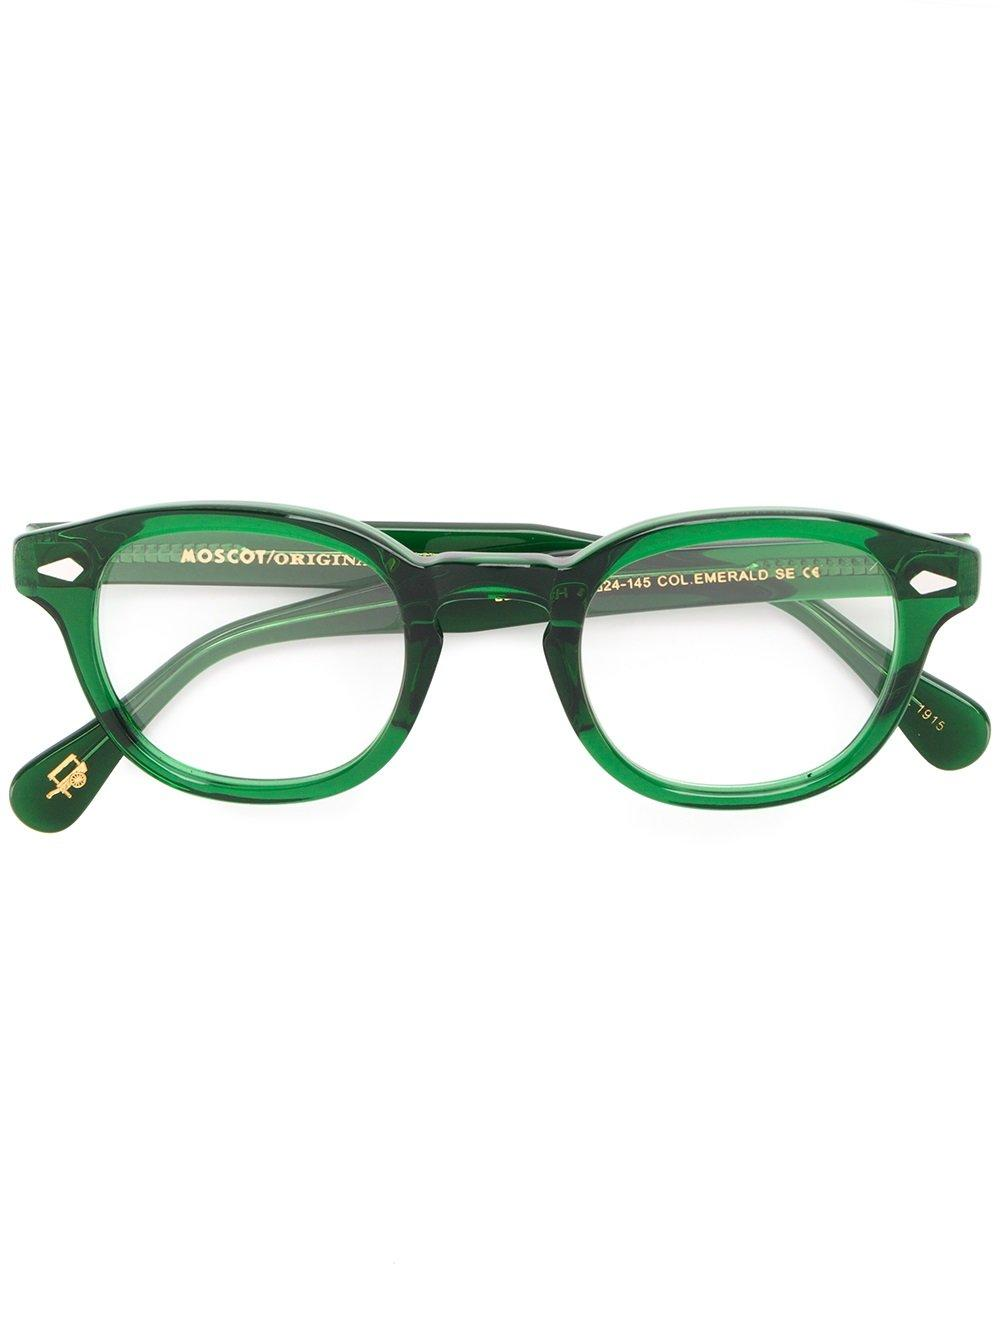 Moscot 'lemtosh' Glasses In Green